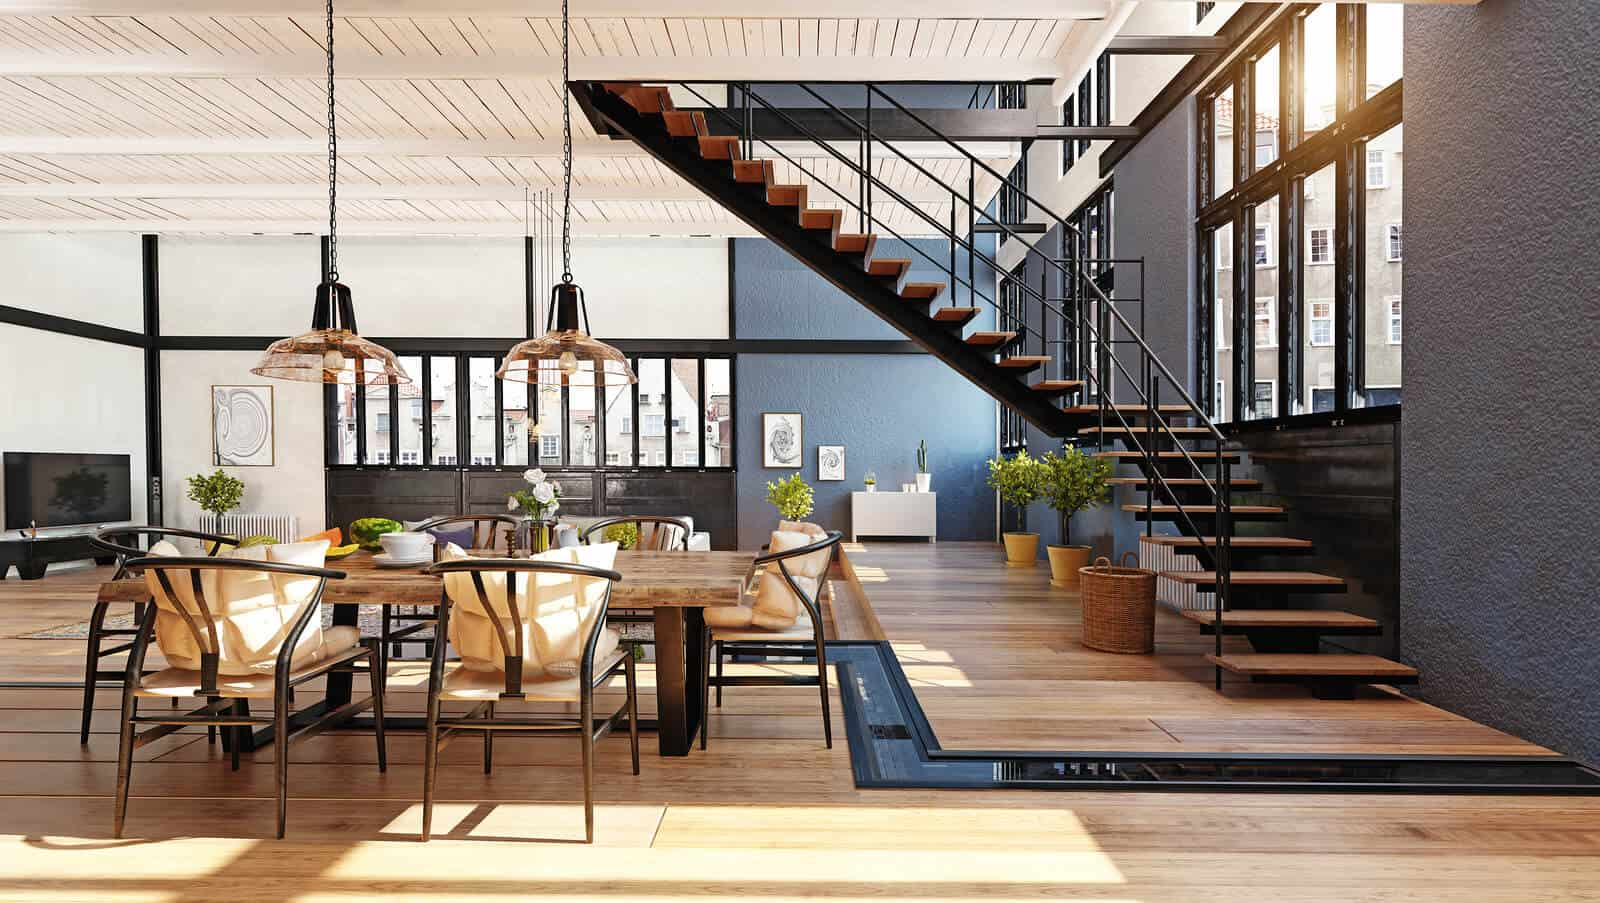 The Pros & Cons of Living in a Chicago Timber Loft